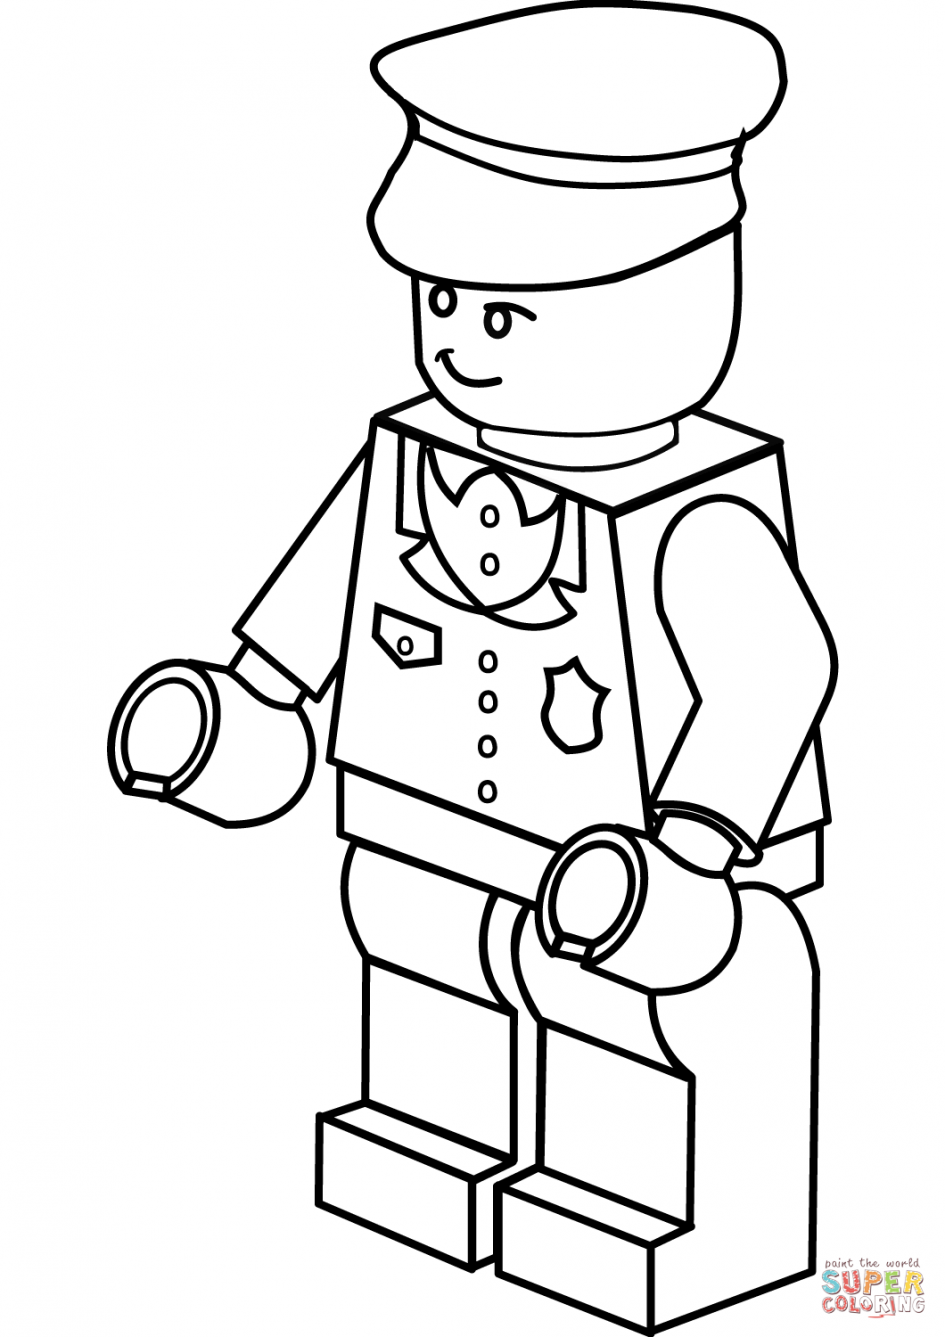 lego police officer coloring page lego police coloring pages color online free printable page officer lego police coloring